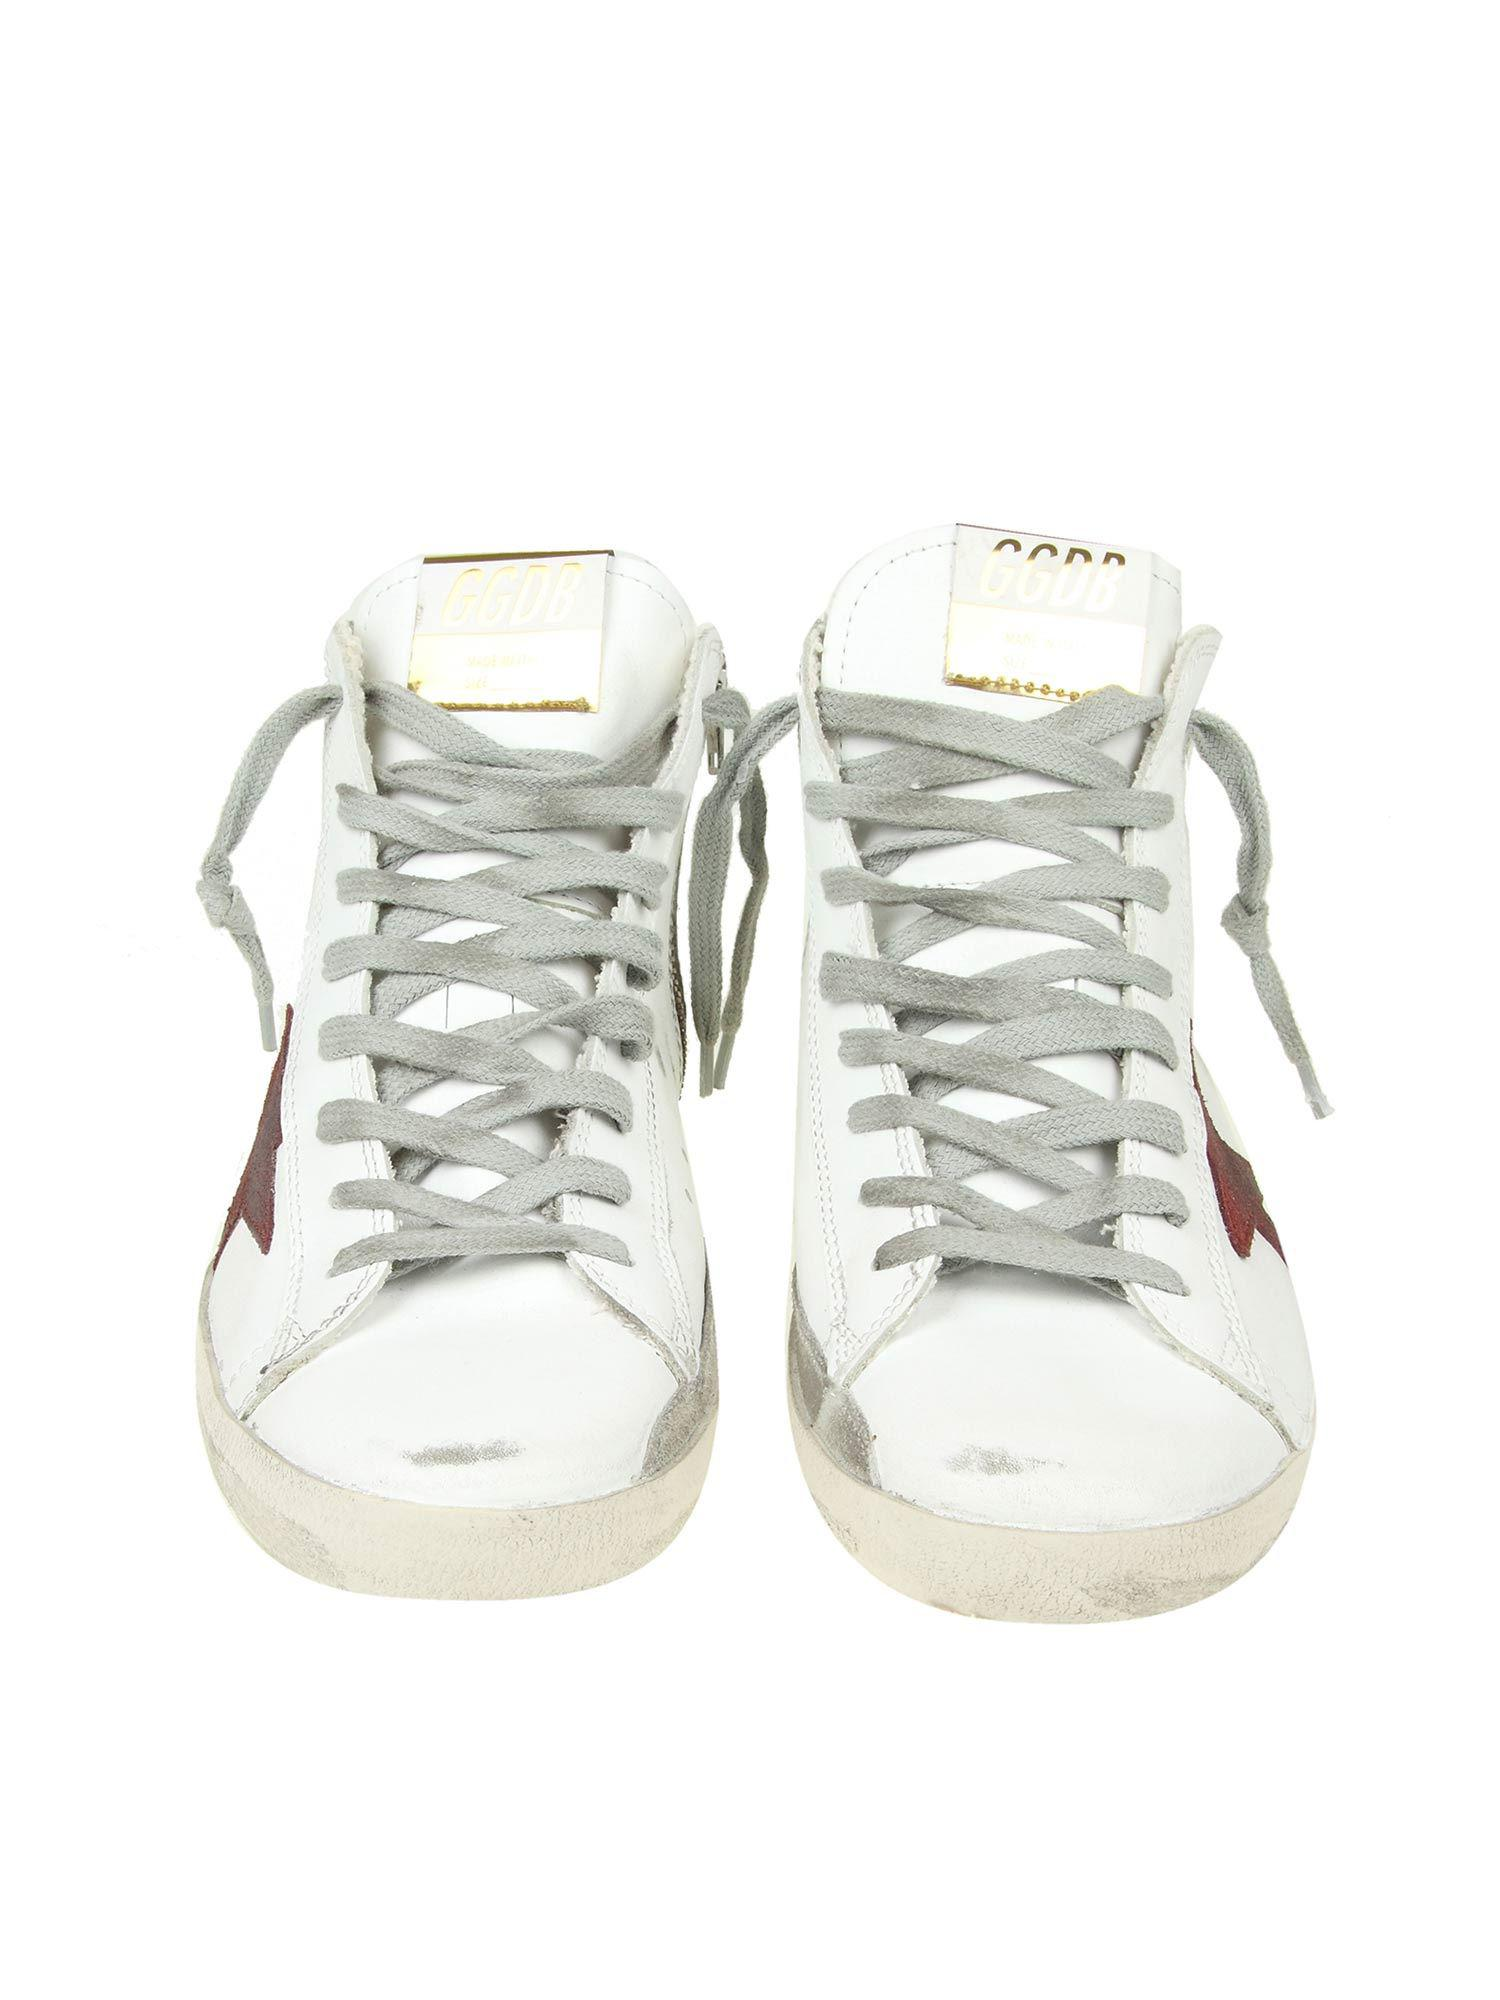 Golden Goose Deluxe Brand Leather Francy White Sneakers